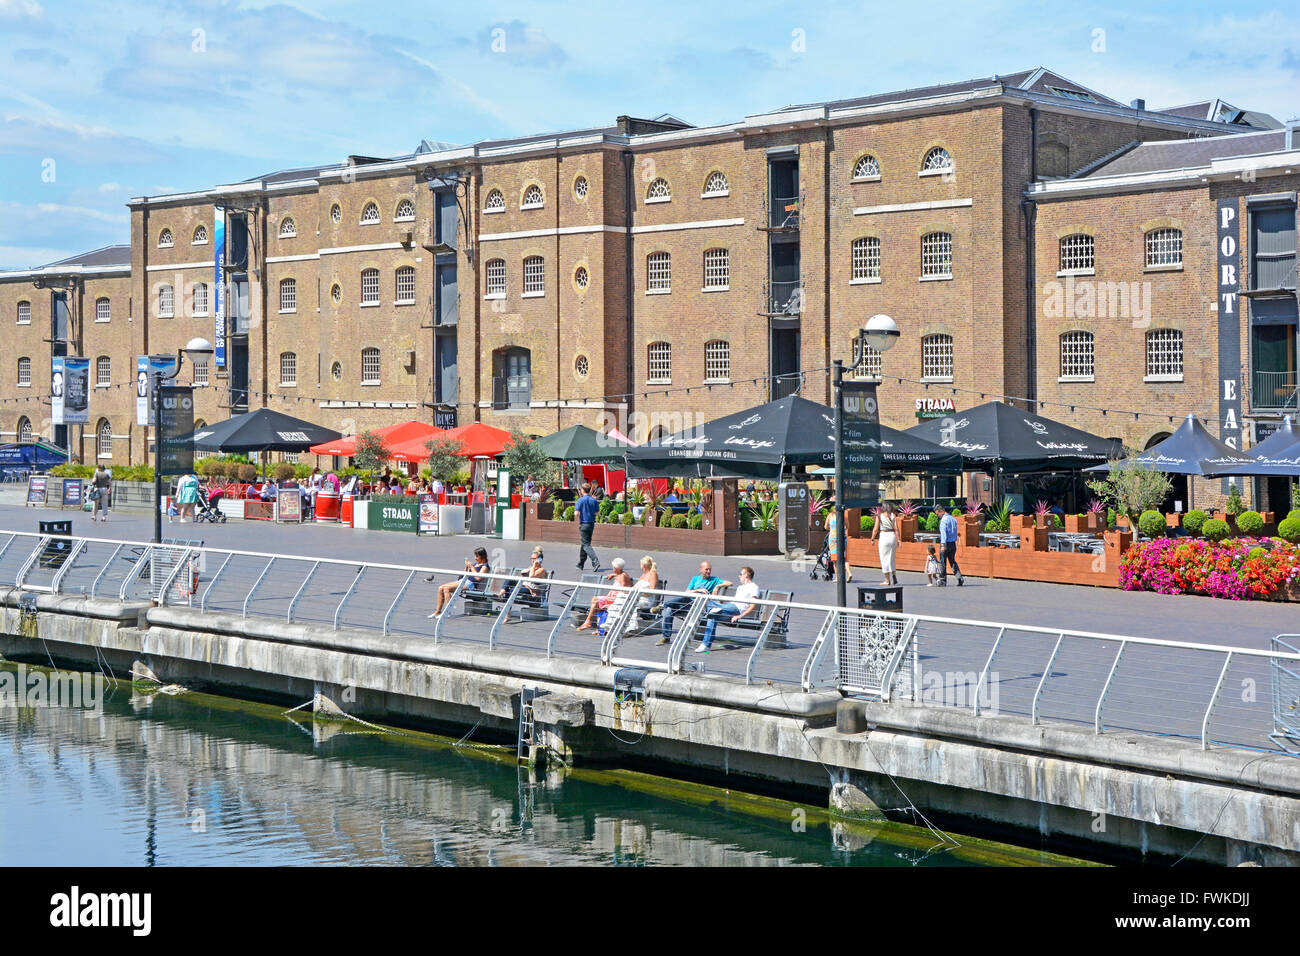 Outdoor restaurant & converted warehouses beside North Dock of old West India Docks at Canary Wharf London Docklands, - Stock Image